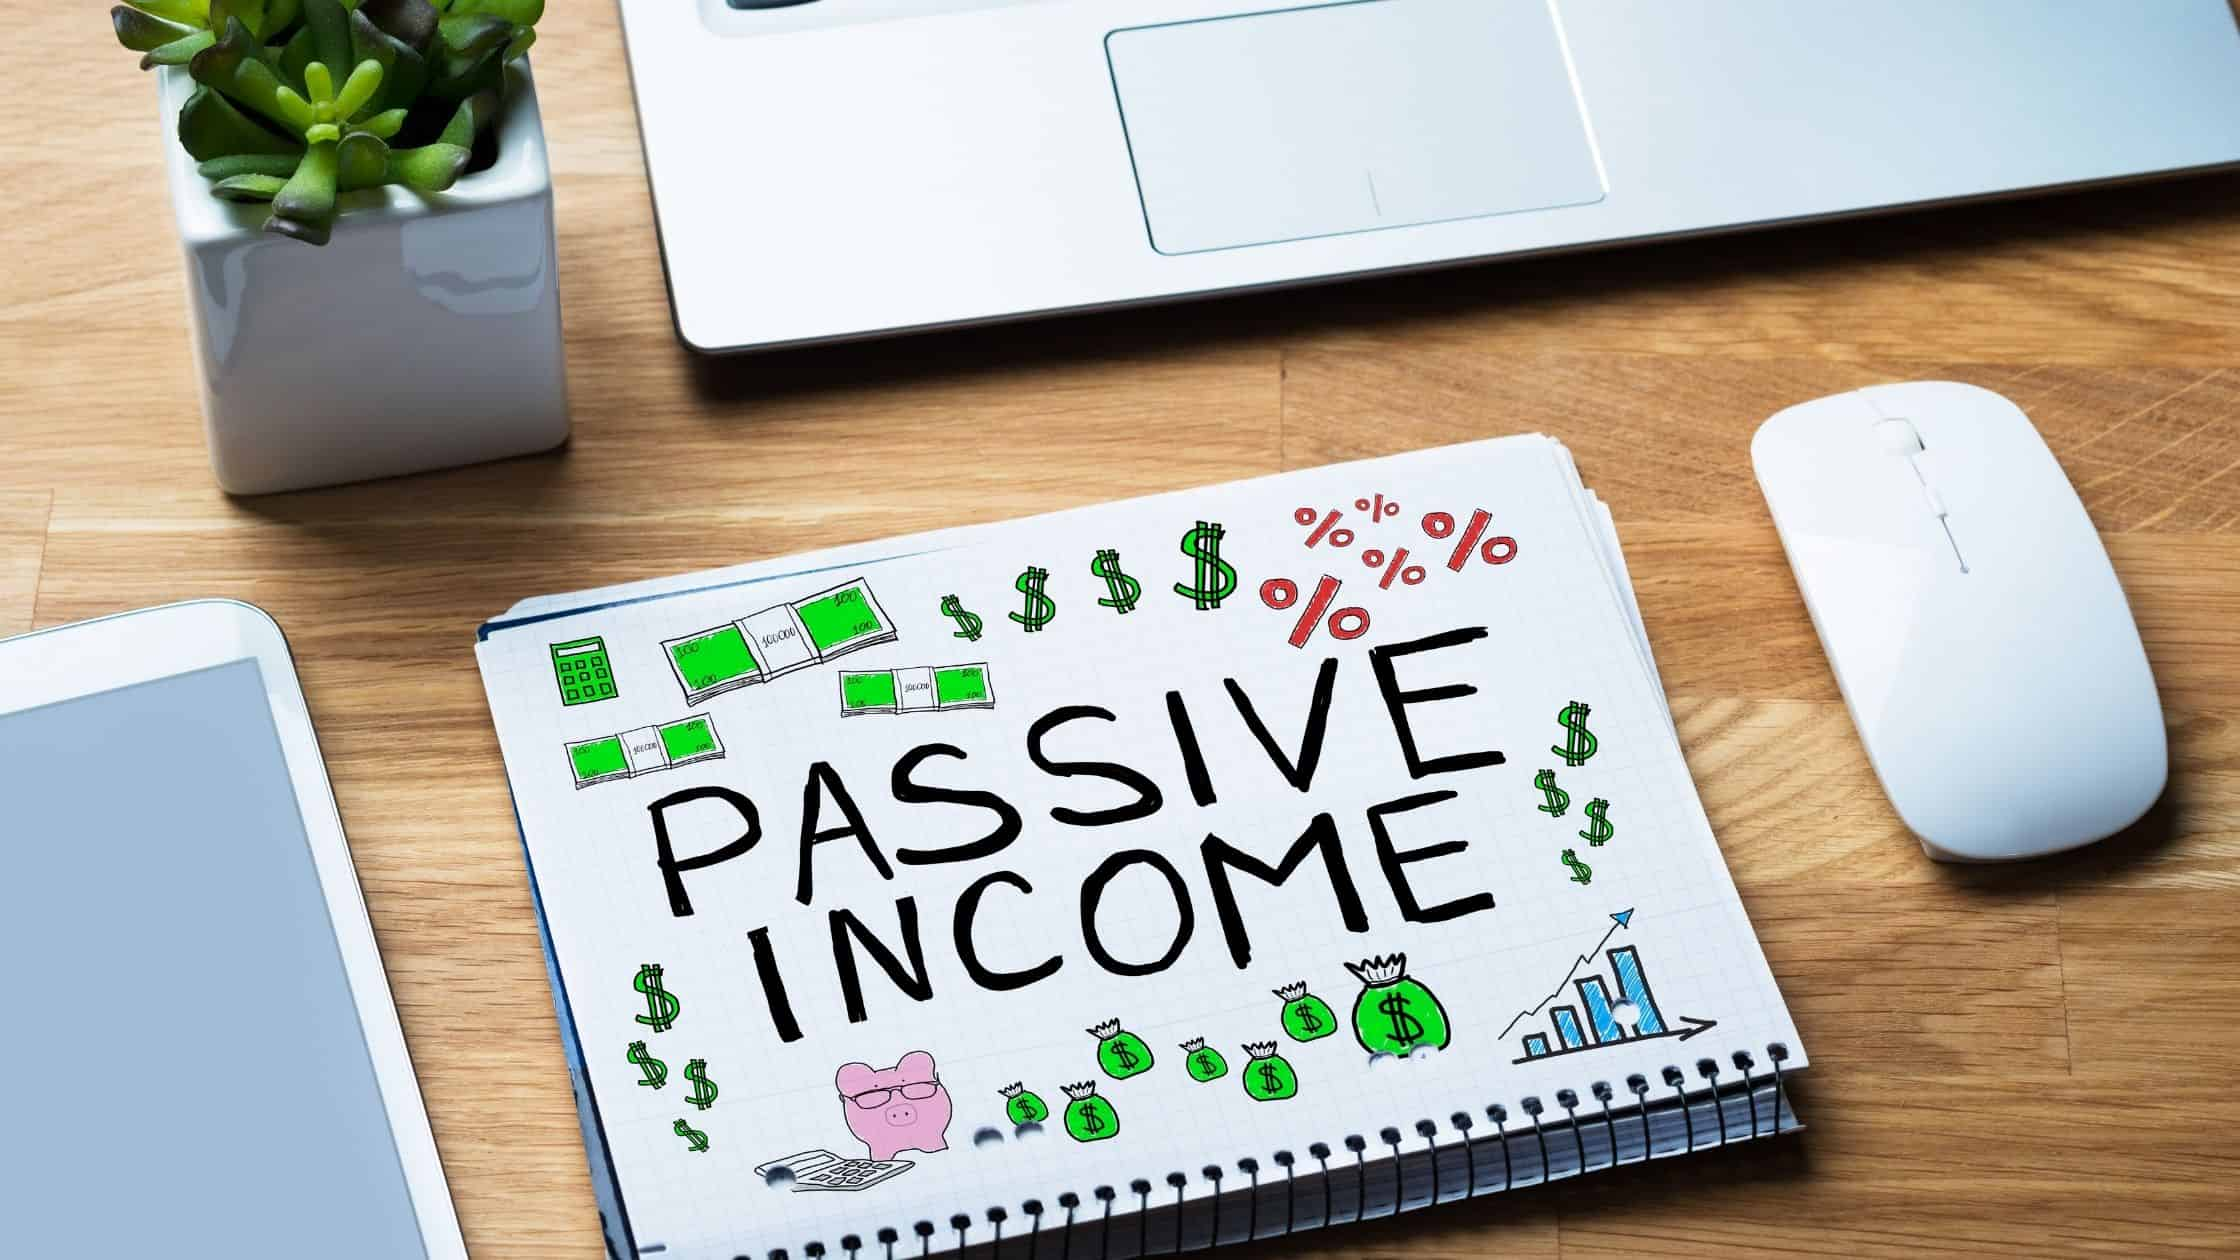 passive income written out on paper